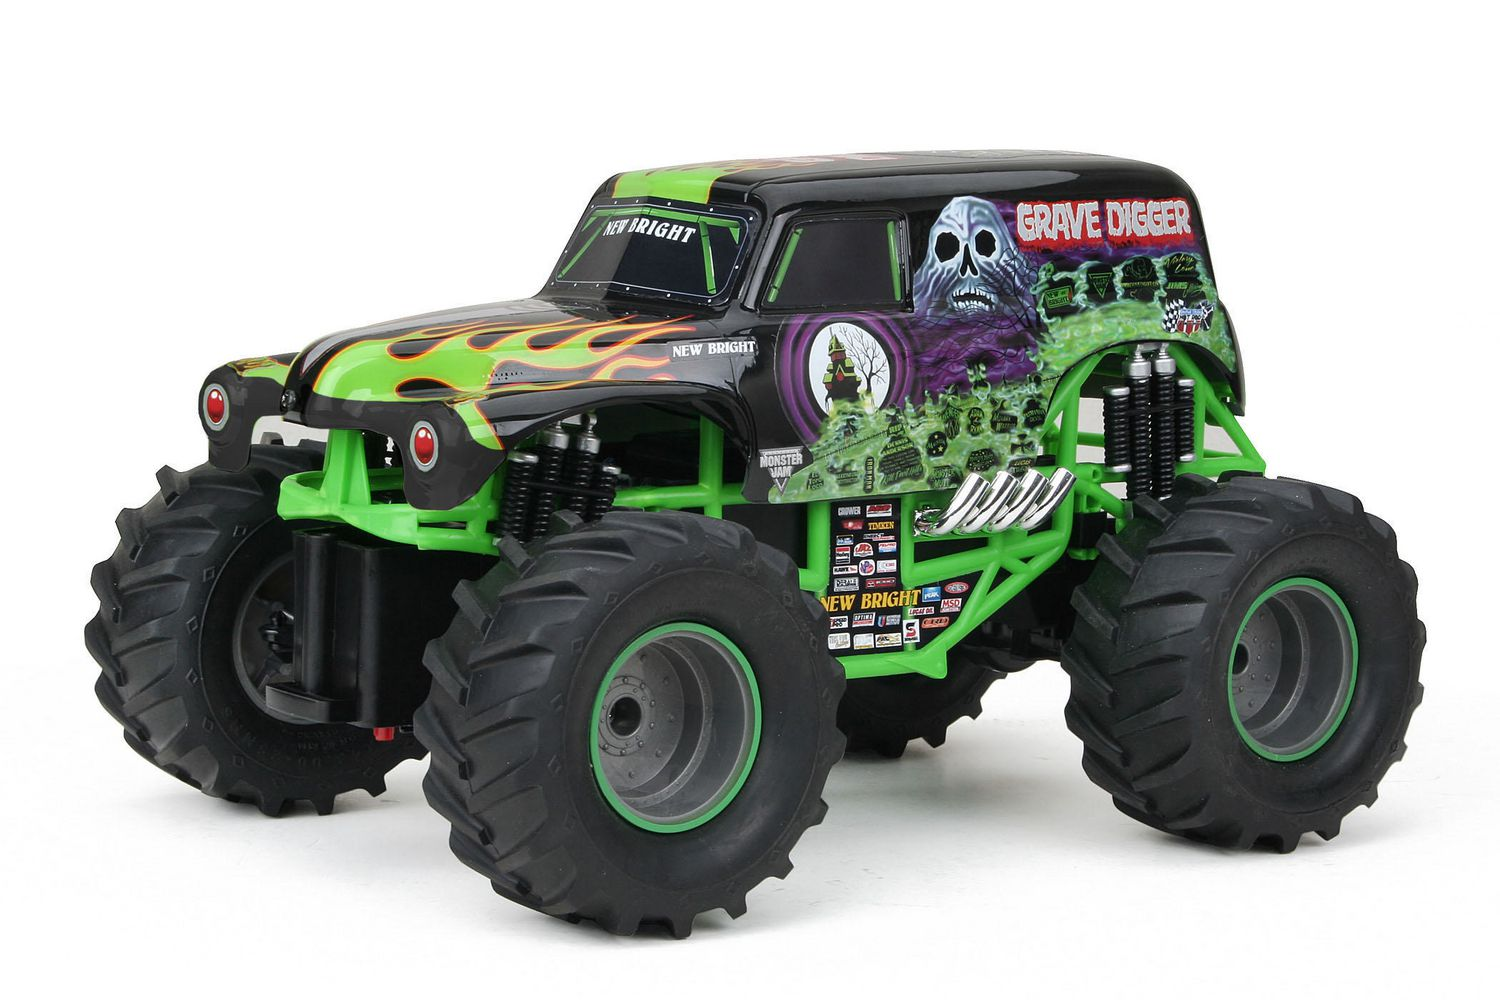 fr ip new bright  rc camion grave digger